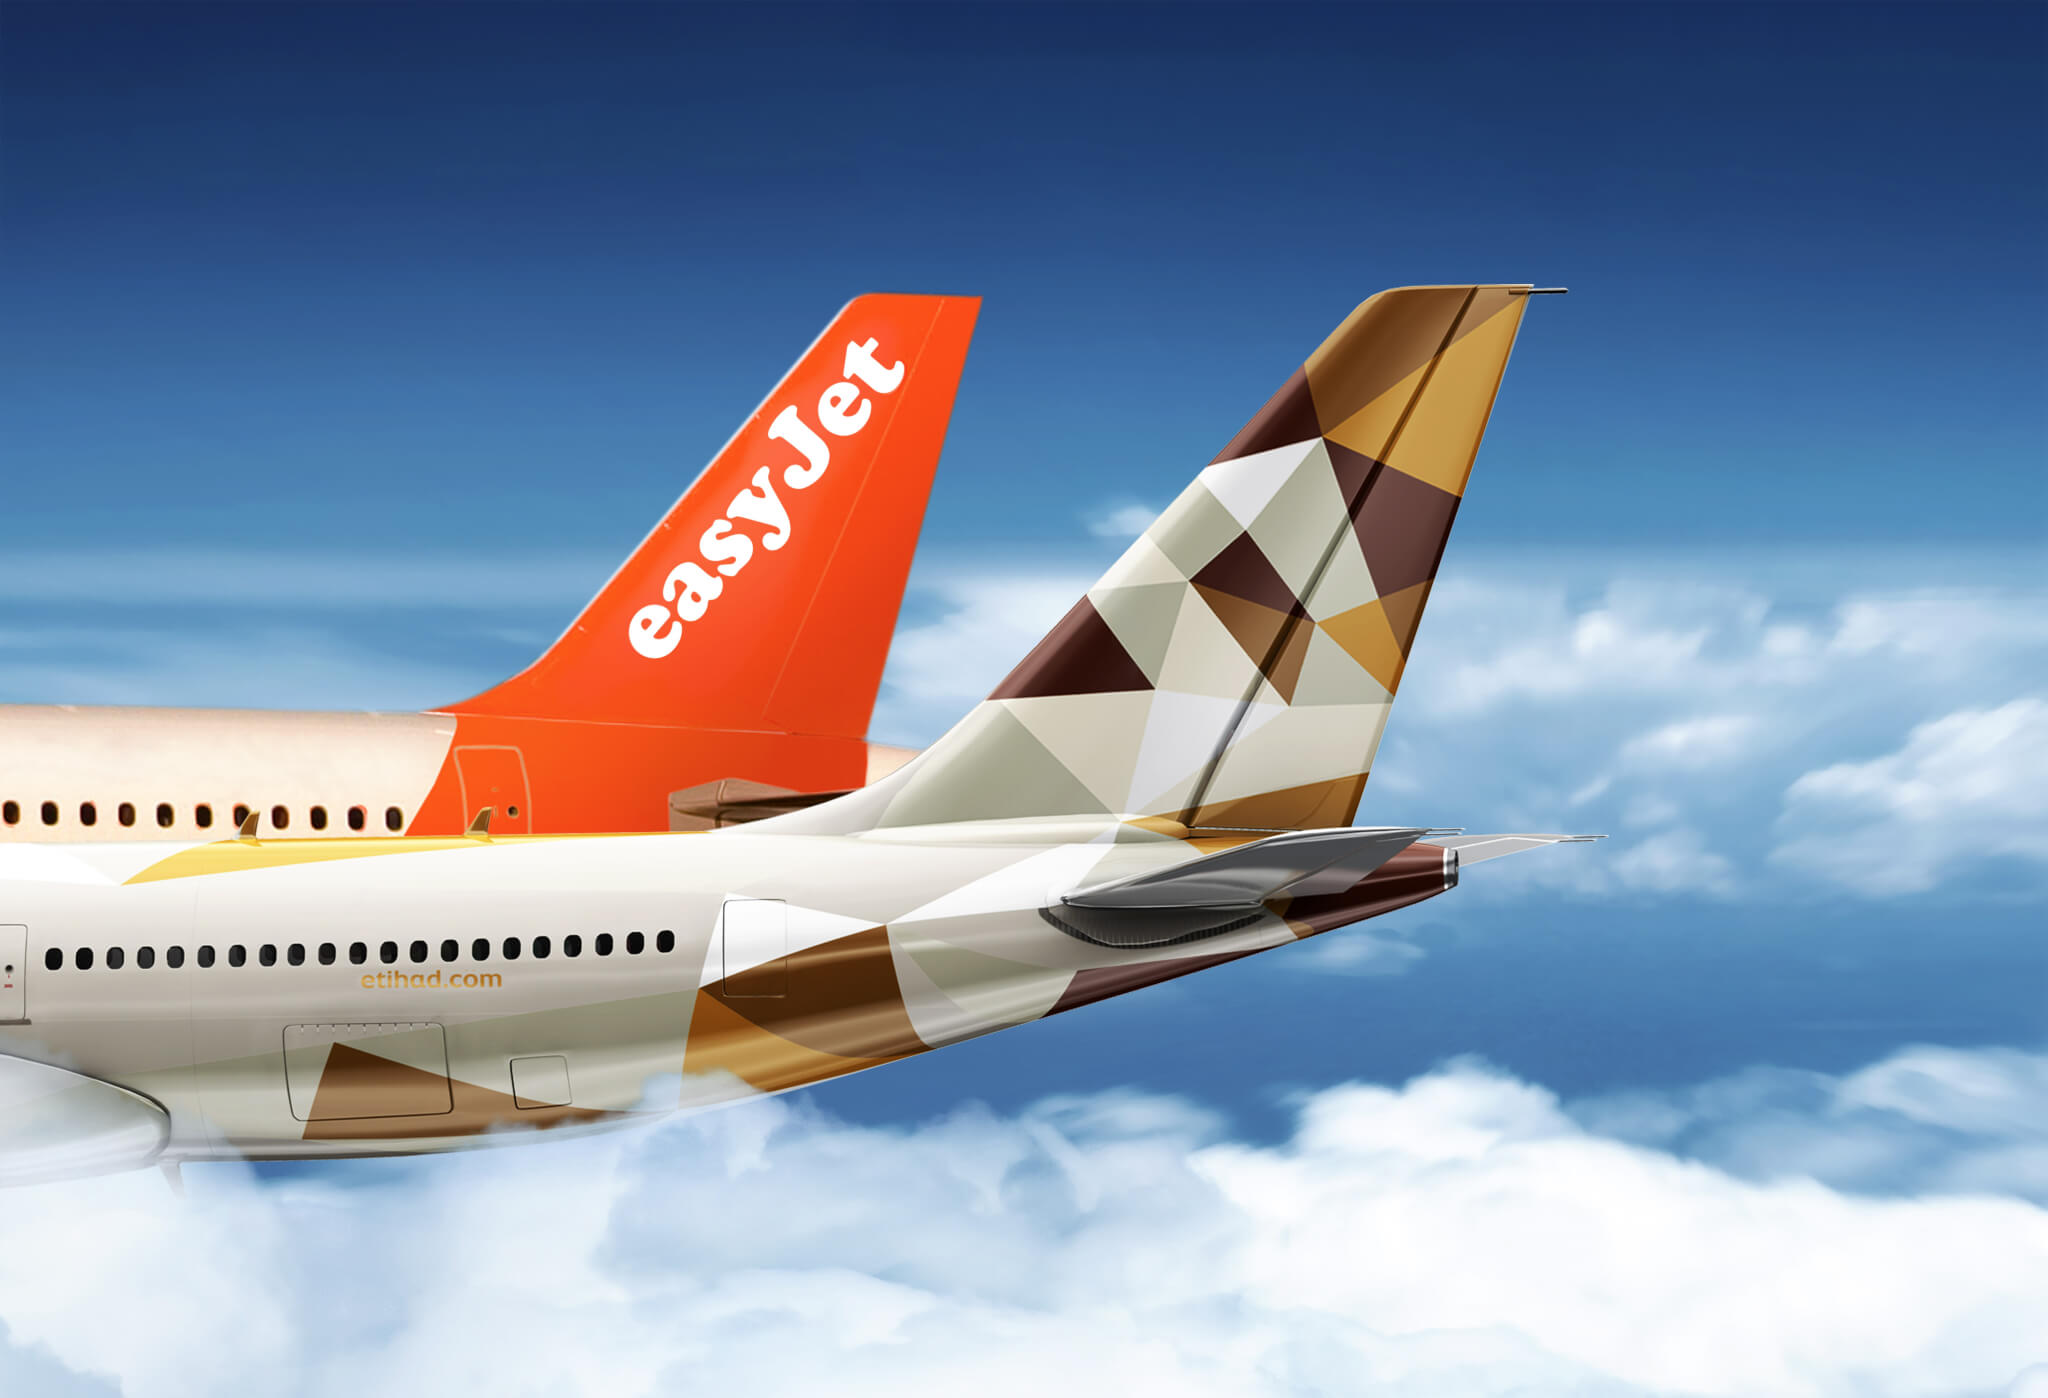 How a full service airline partner with a budget carrier?